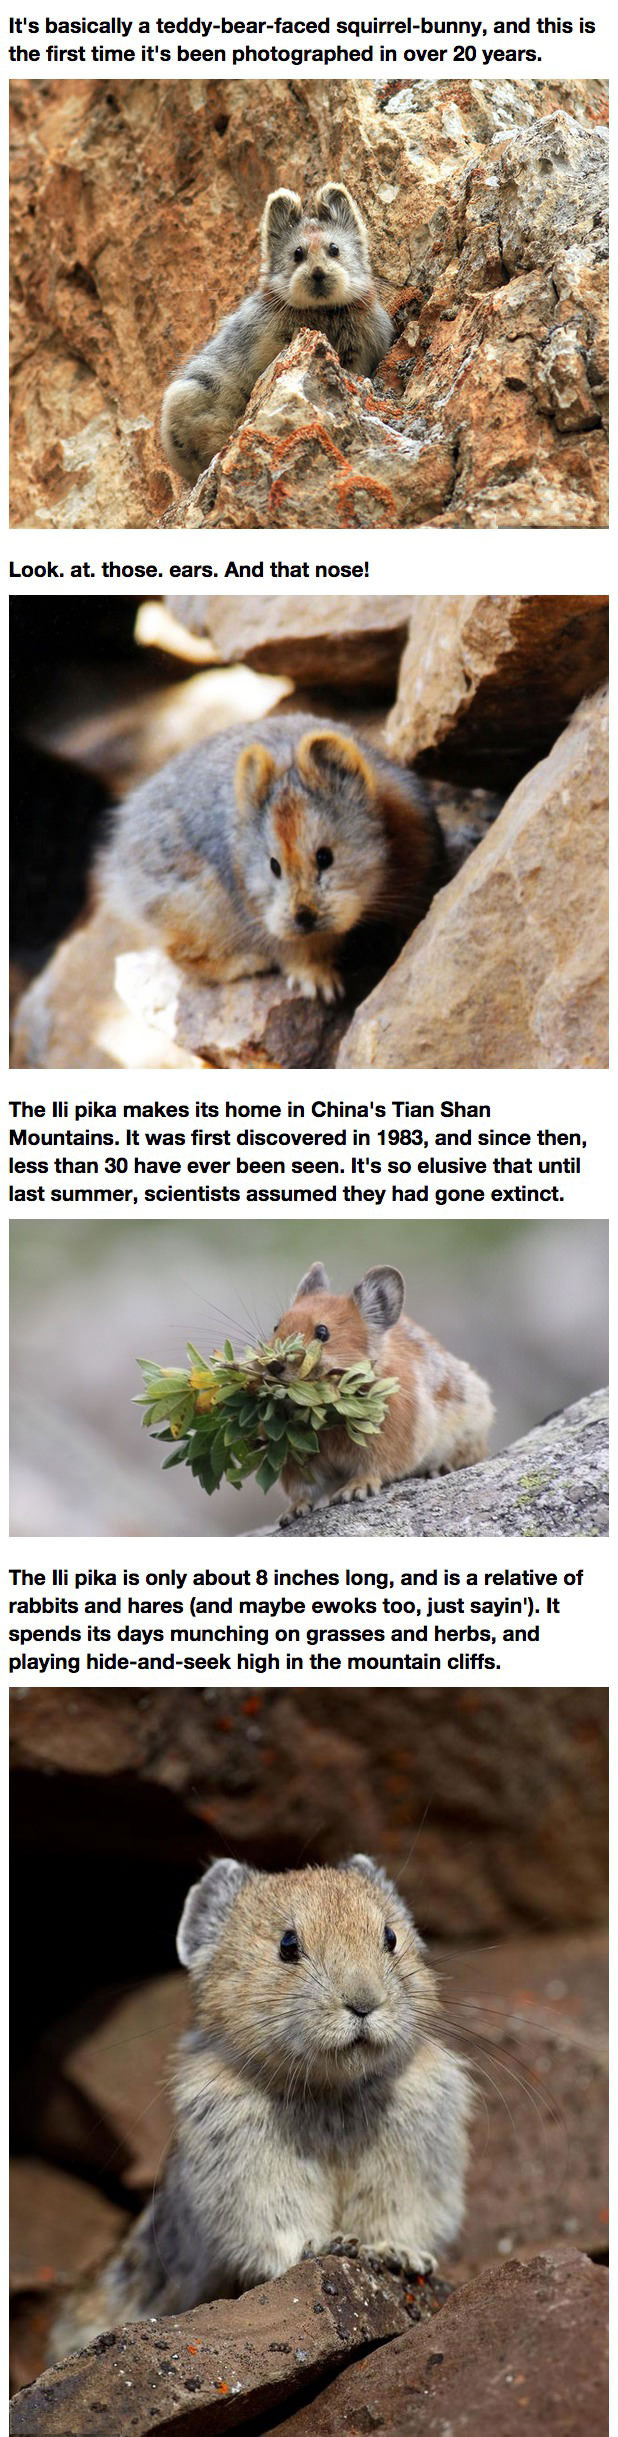 the ili pika makes its home in china's tian shan mountains, it's basically a teddy bear faced squirrel bunny